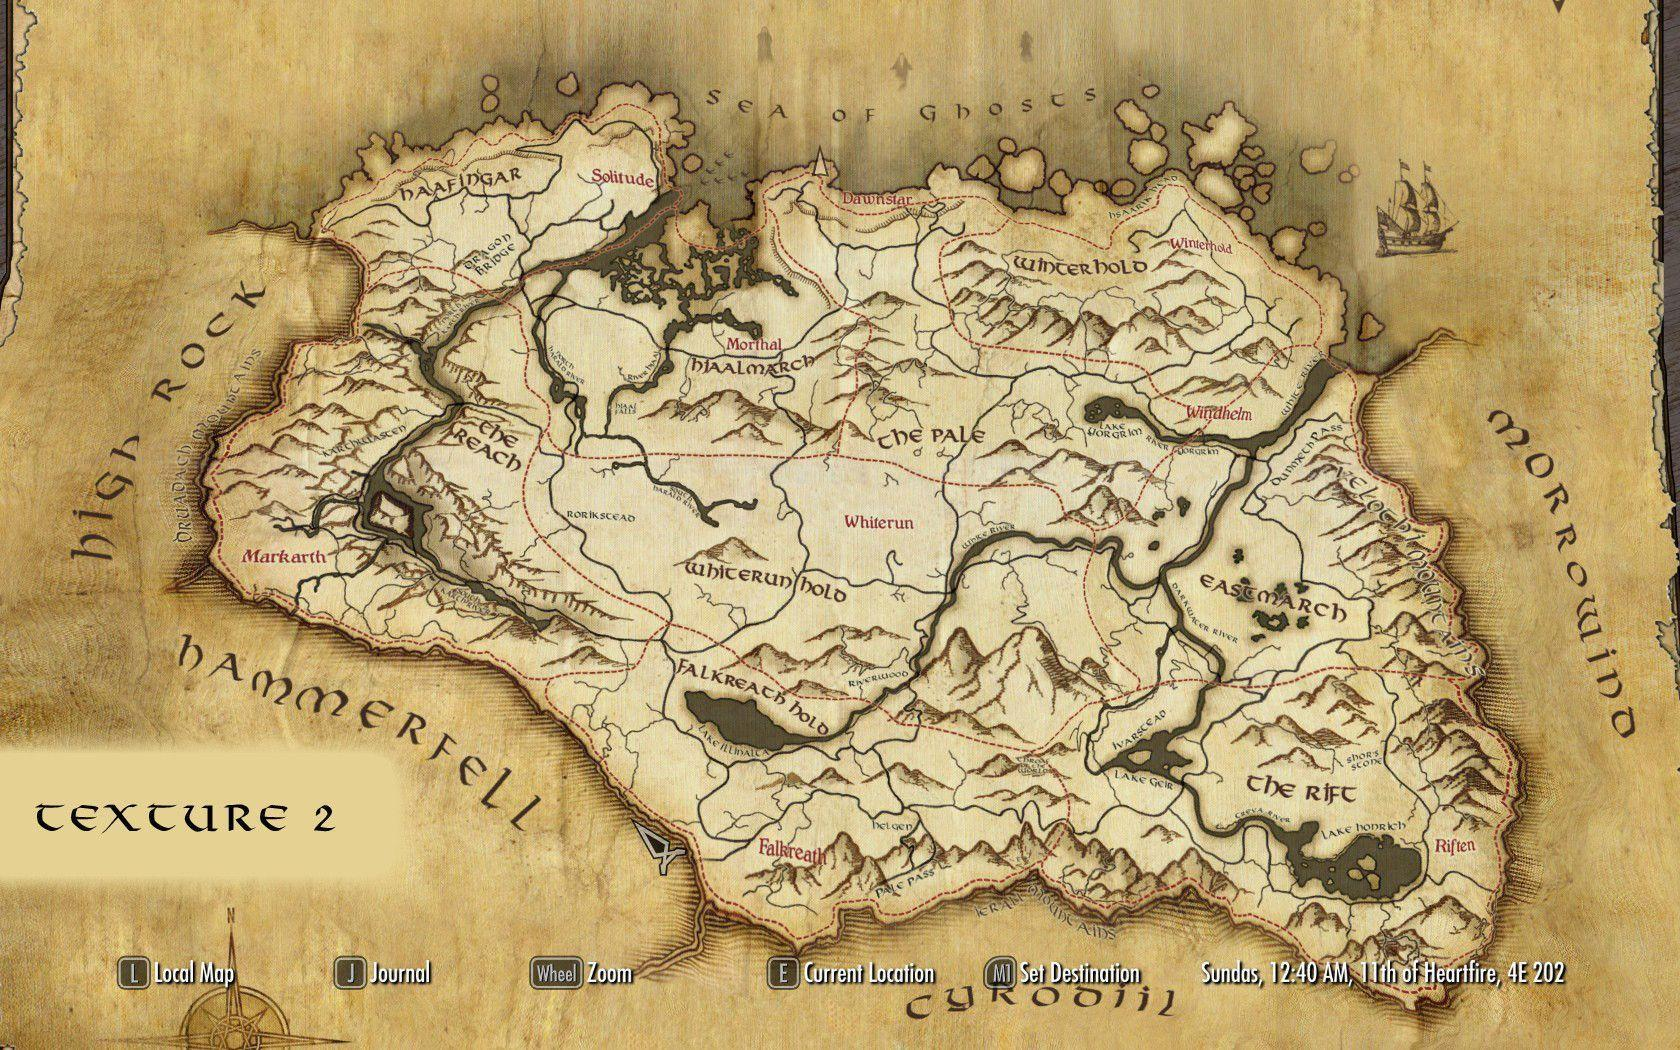 Skyrim Map Wallpapers - Wallpaper Cave on full dragonborn map, raven rock location map, full borderlands 2 map, dungeons and dragons 3.5 map, full map of game of thrones, full red dead redemption map, full minecraft map, elder scrolls 5 map, full world map, full zelda map, full map guild wars 2, elder scrolls world map, full wow map, full pokemon map, full elder scrolls map, full star wars map, morrowind full map, saints row the third full map, full tamriel map, full terraria map,